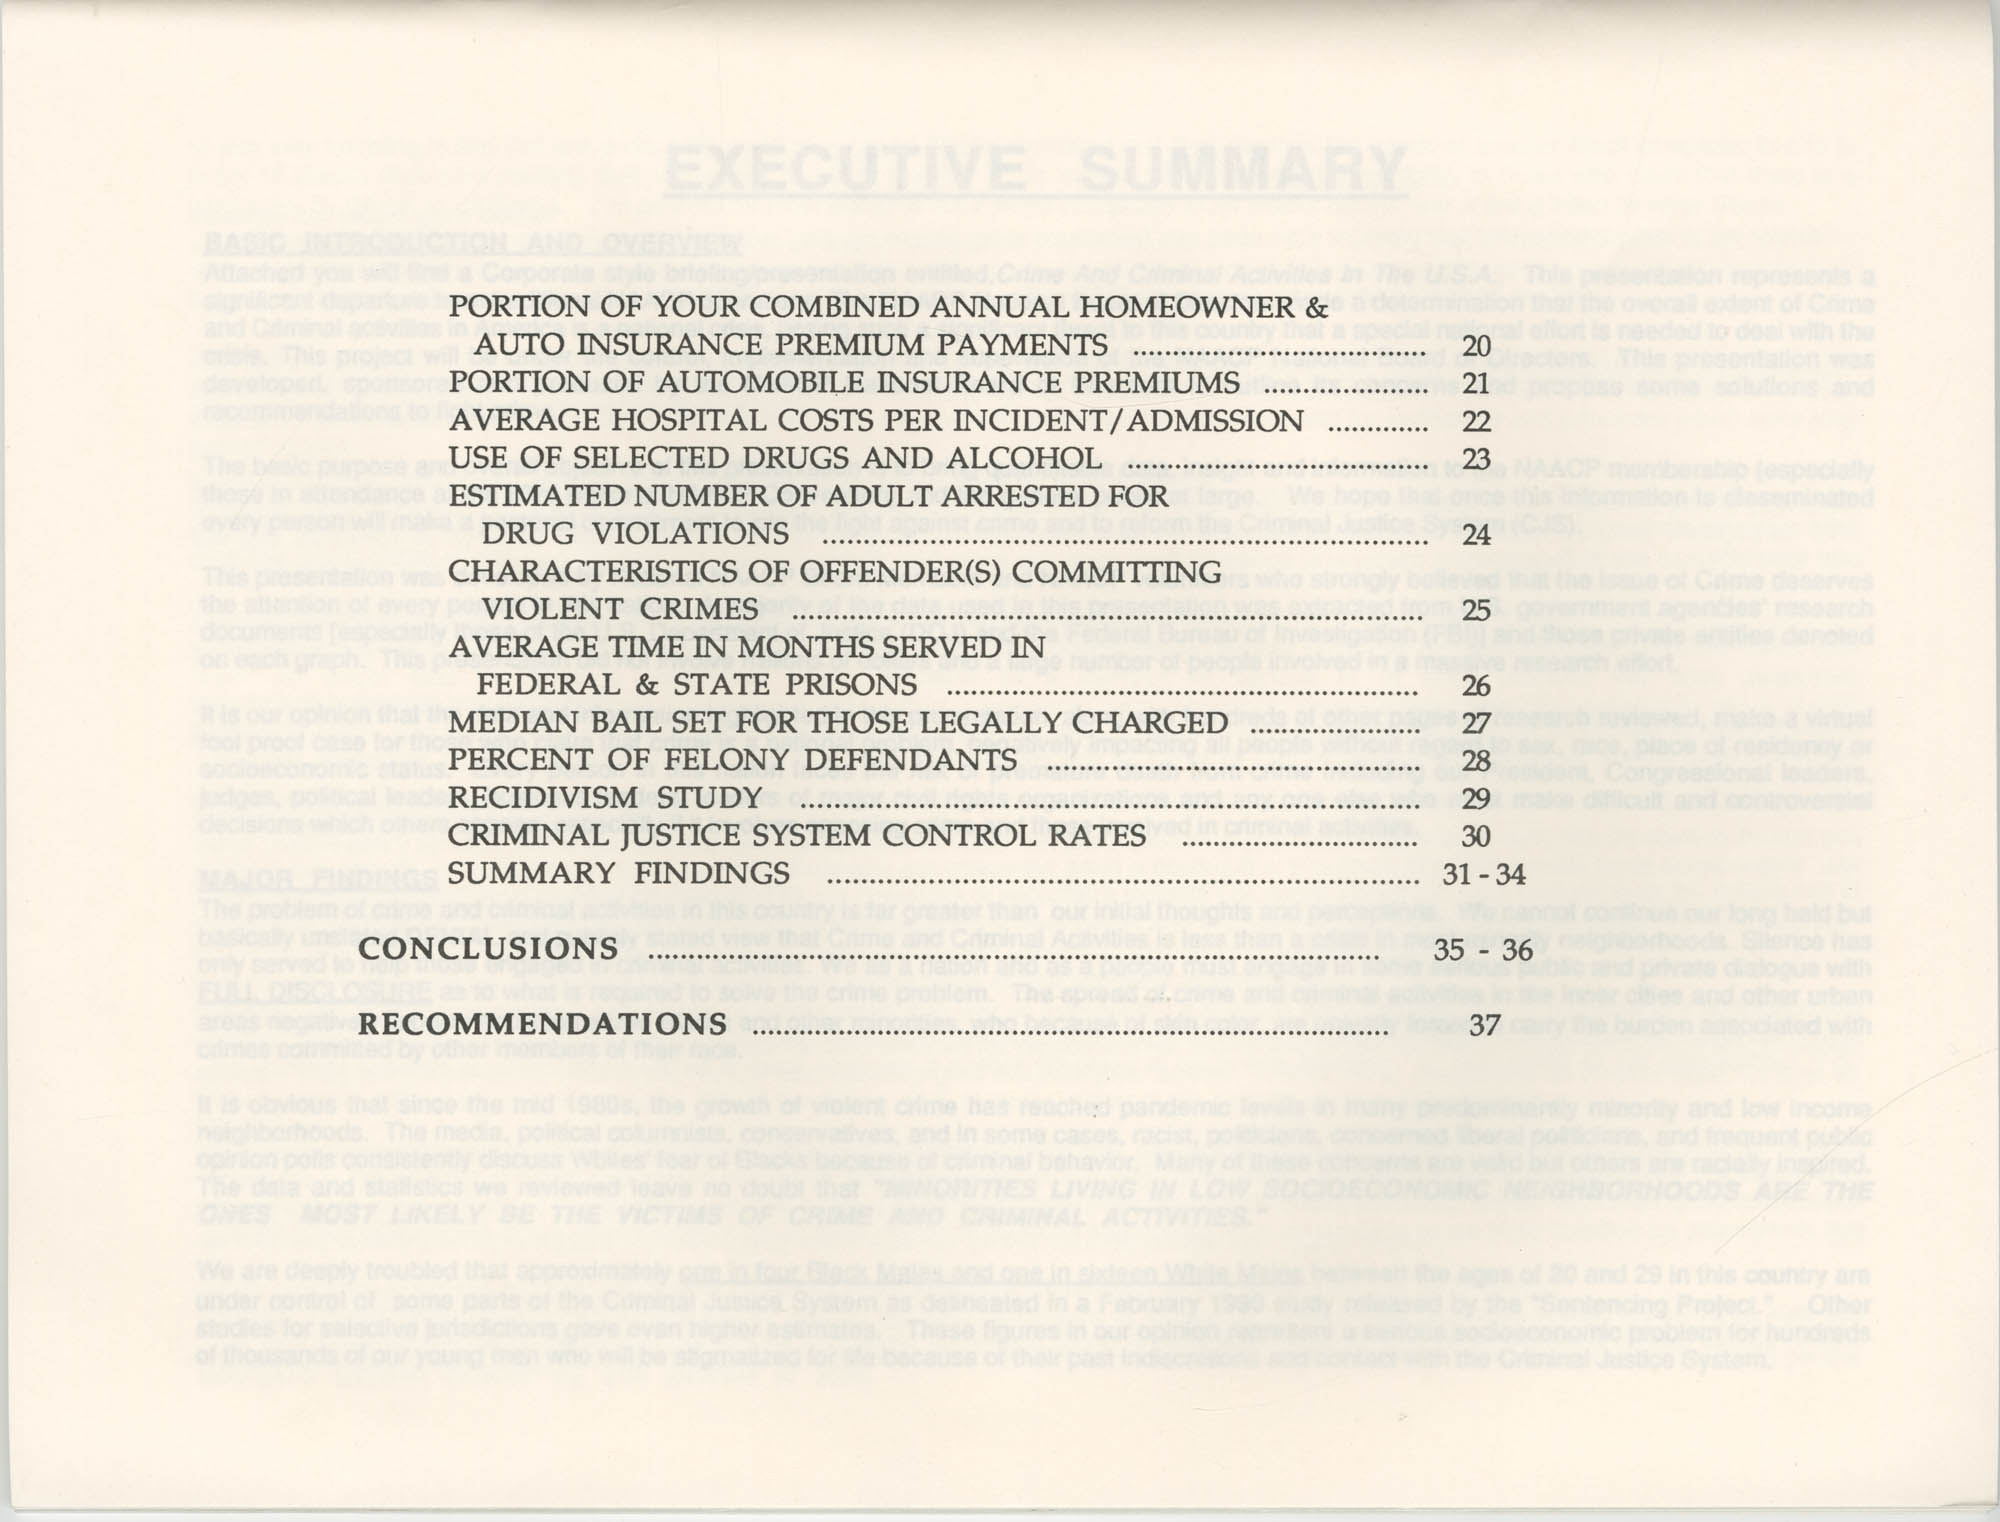 Crime and Criminal Activities in the U.S.A., NAACP National Board of Directors, Table of Contents, Page 2